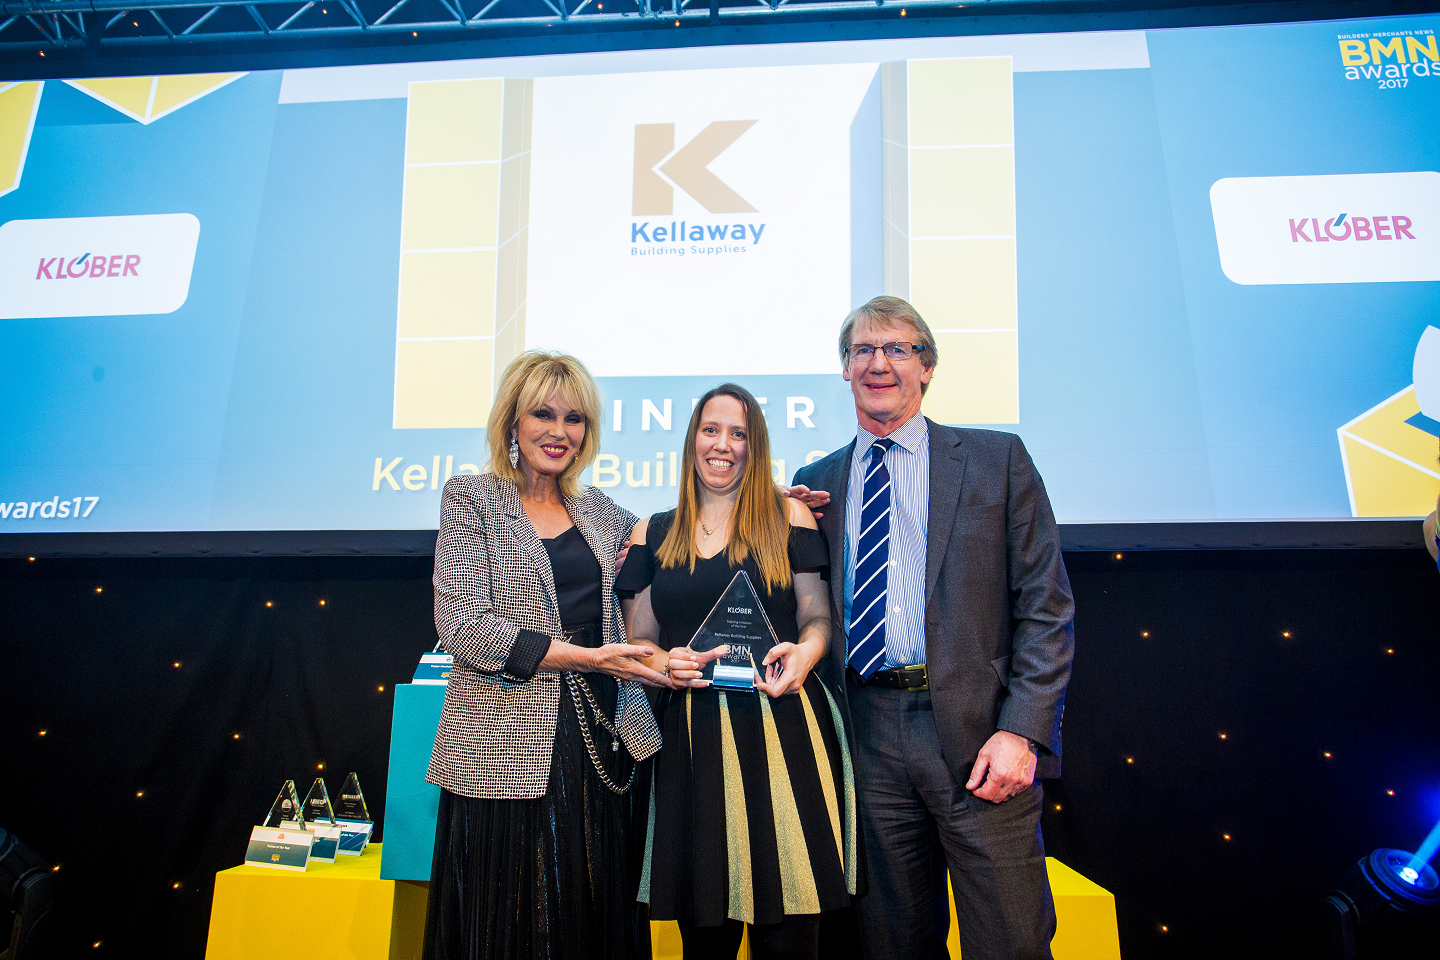 Winner of Training Initiative of the Year; Joanna Lumley, Abigail Tovey, Personnel and Welfare Manager Company - Kellaway Building Supplies, Adrian Fishley, Sales Director - Klober Ltd